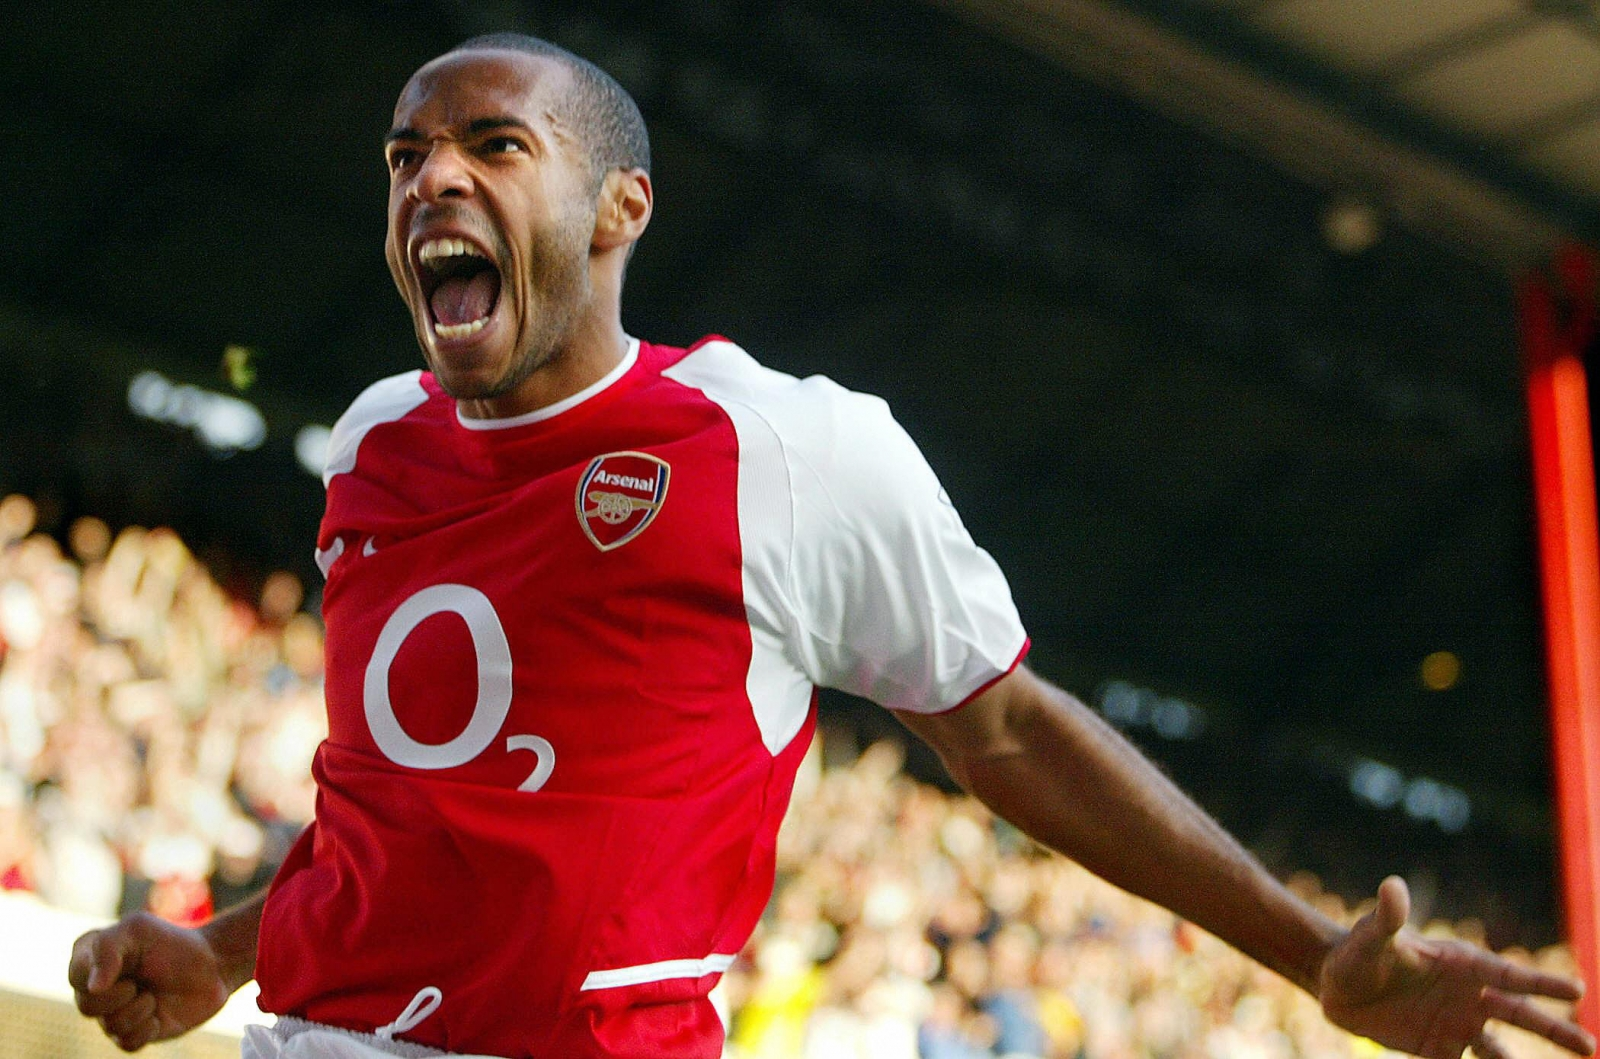 chelsea tried to sign arsenal record goalscorer thierry henry in